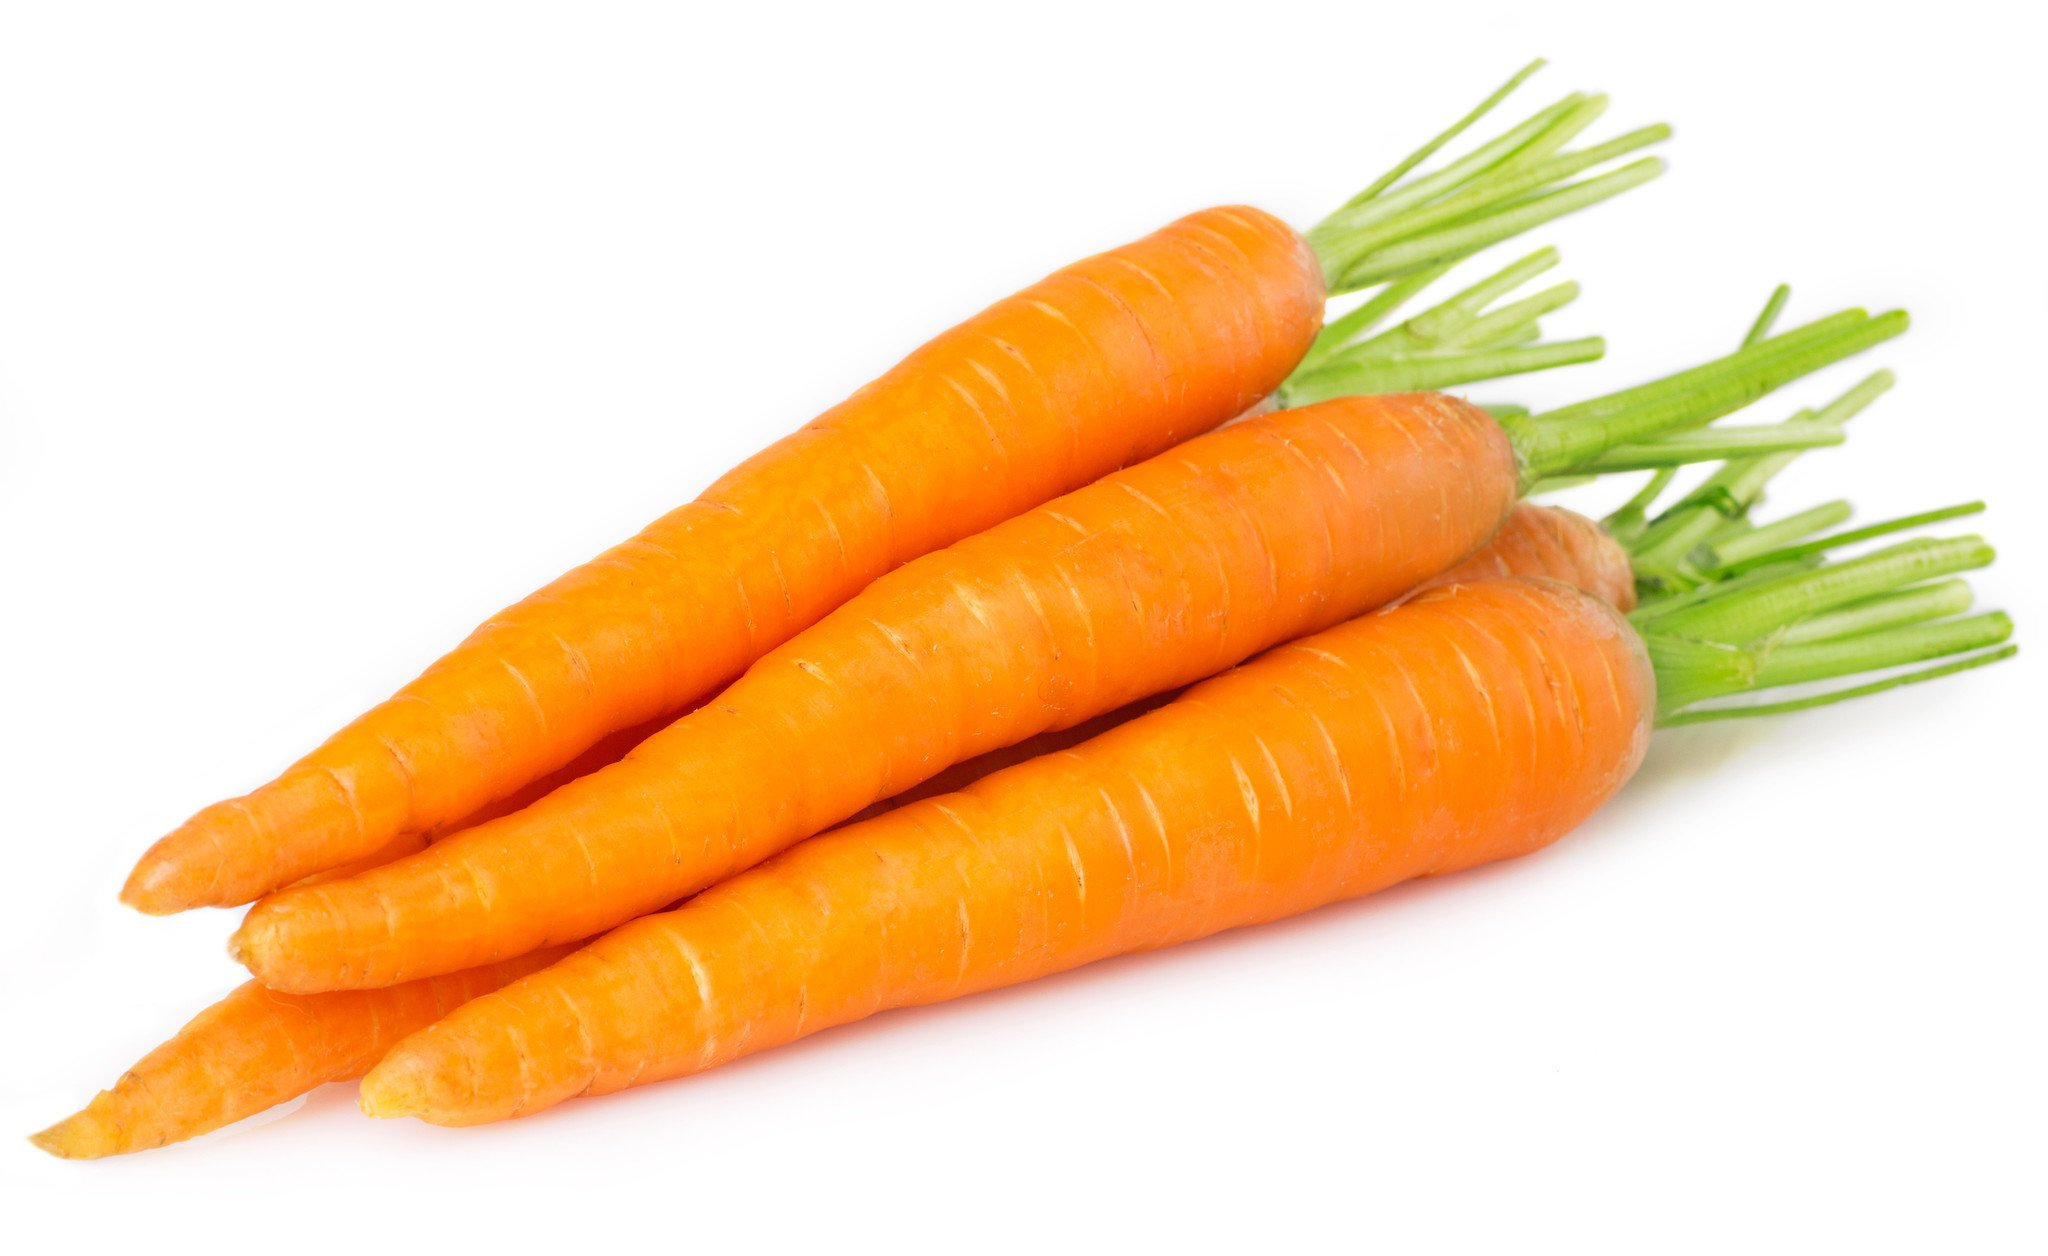 Carrot - Carrot is rich in Beta-carotene which is strong antioxidant. It helps in cell renewal and even out skin tone.Good for Uneven skin tone.